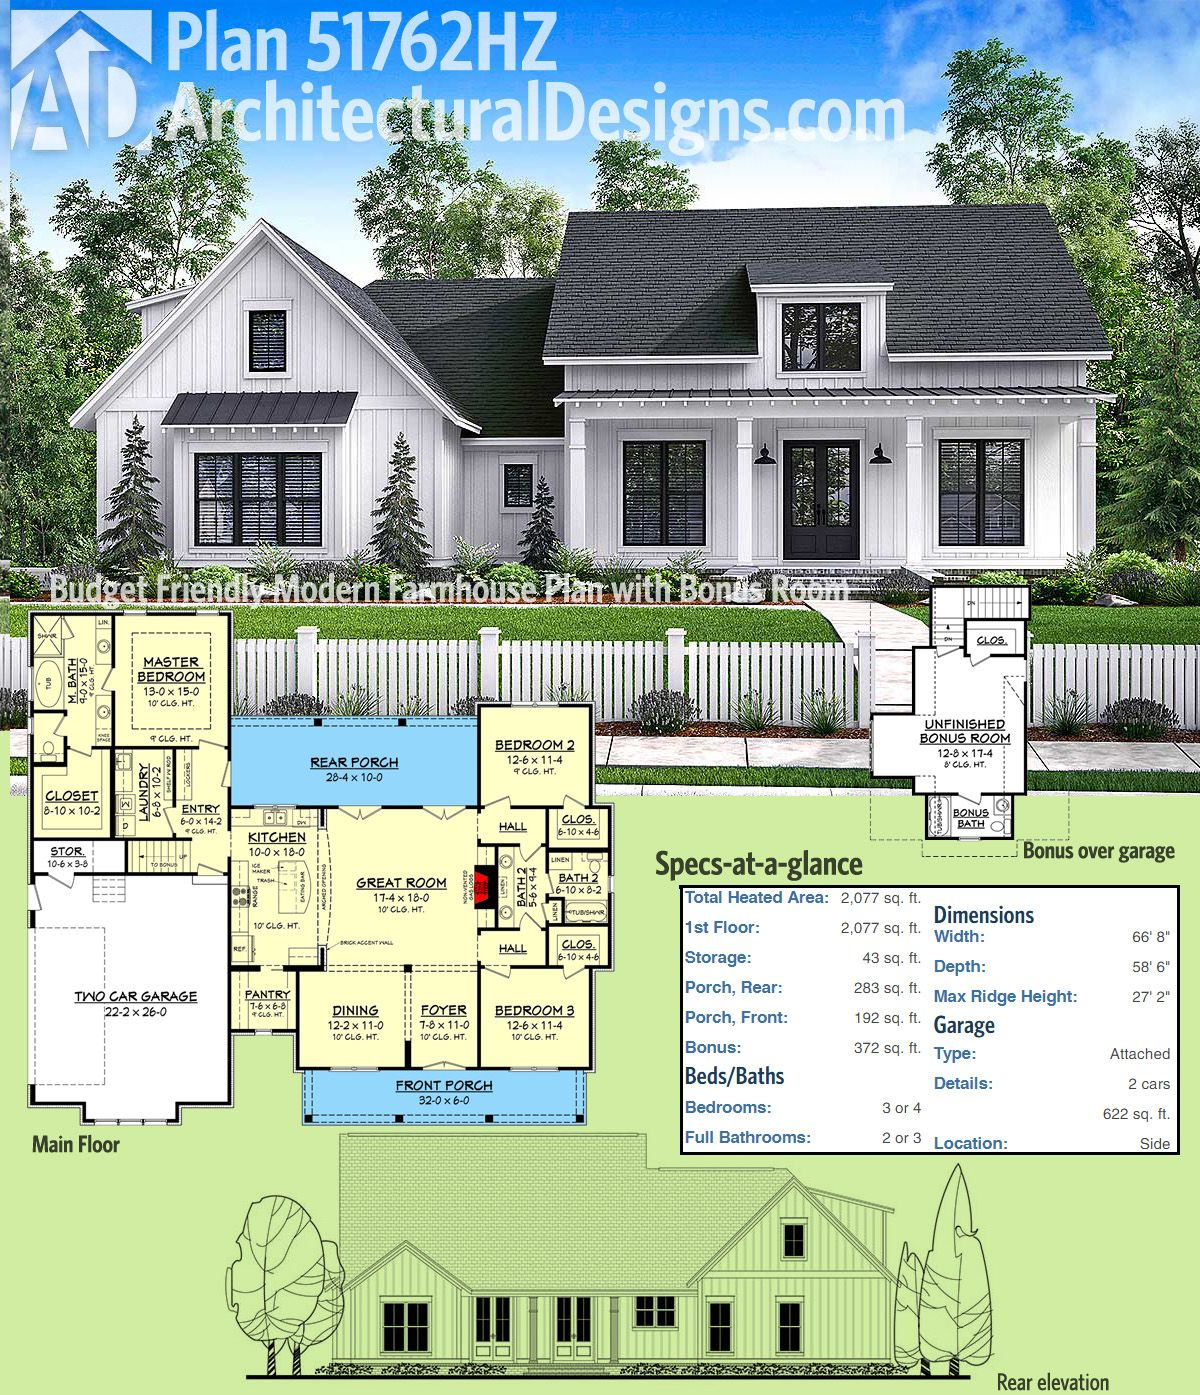 Award Winning Small Home Plans: Plan 51762HZ: Budget Friendly Modern Farmhouse Plan With